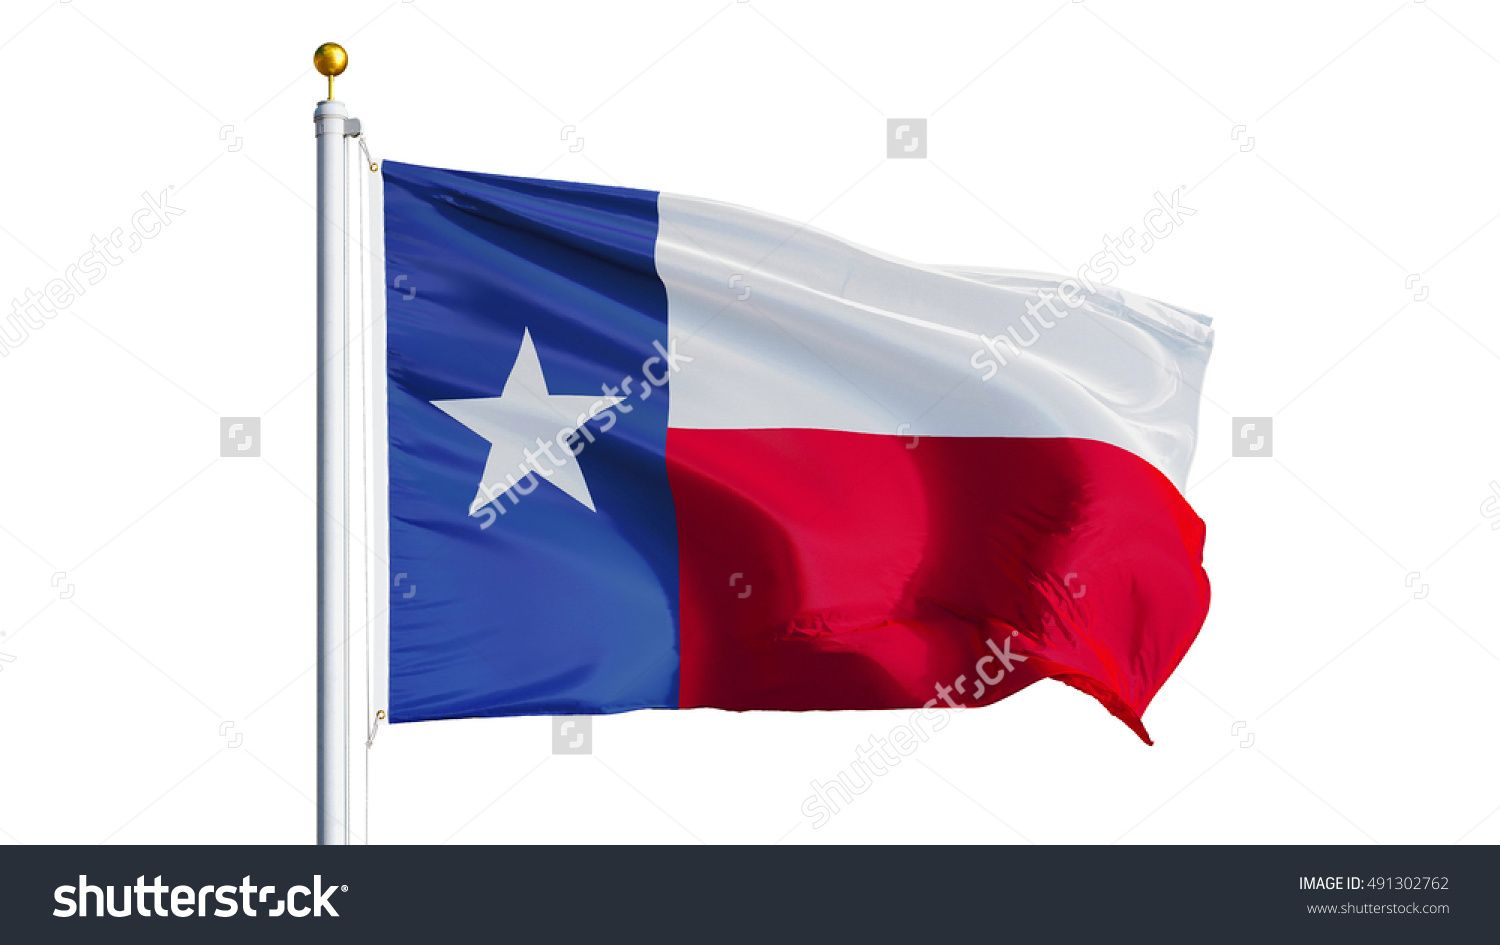 Texas Flag Waving On White Background Close Up Isolated With Clipping Path Mask Alpha Channel Transparency Texas Flags White Background Photo Editing